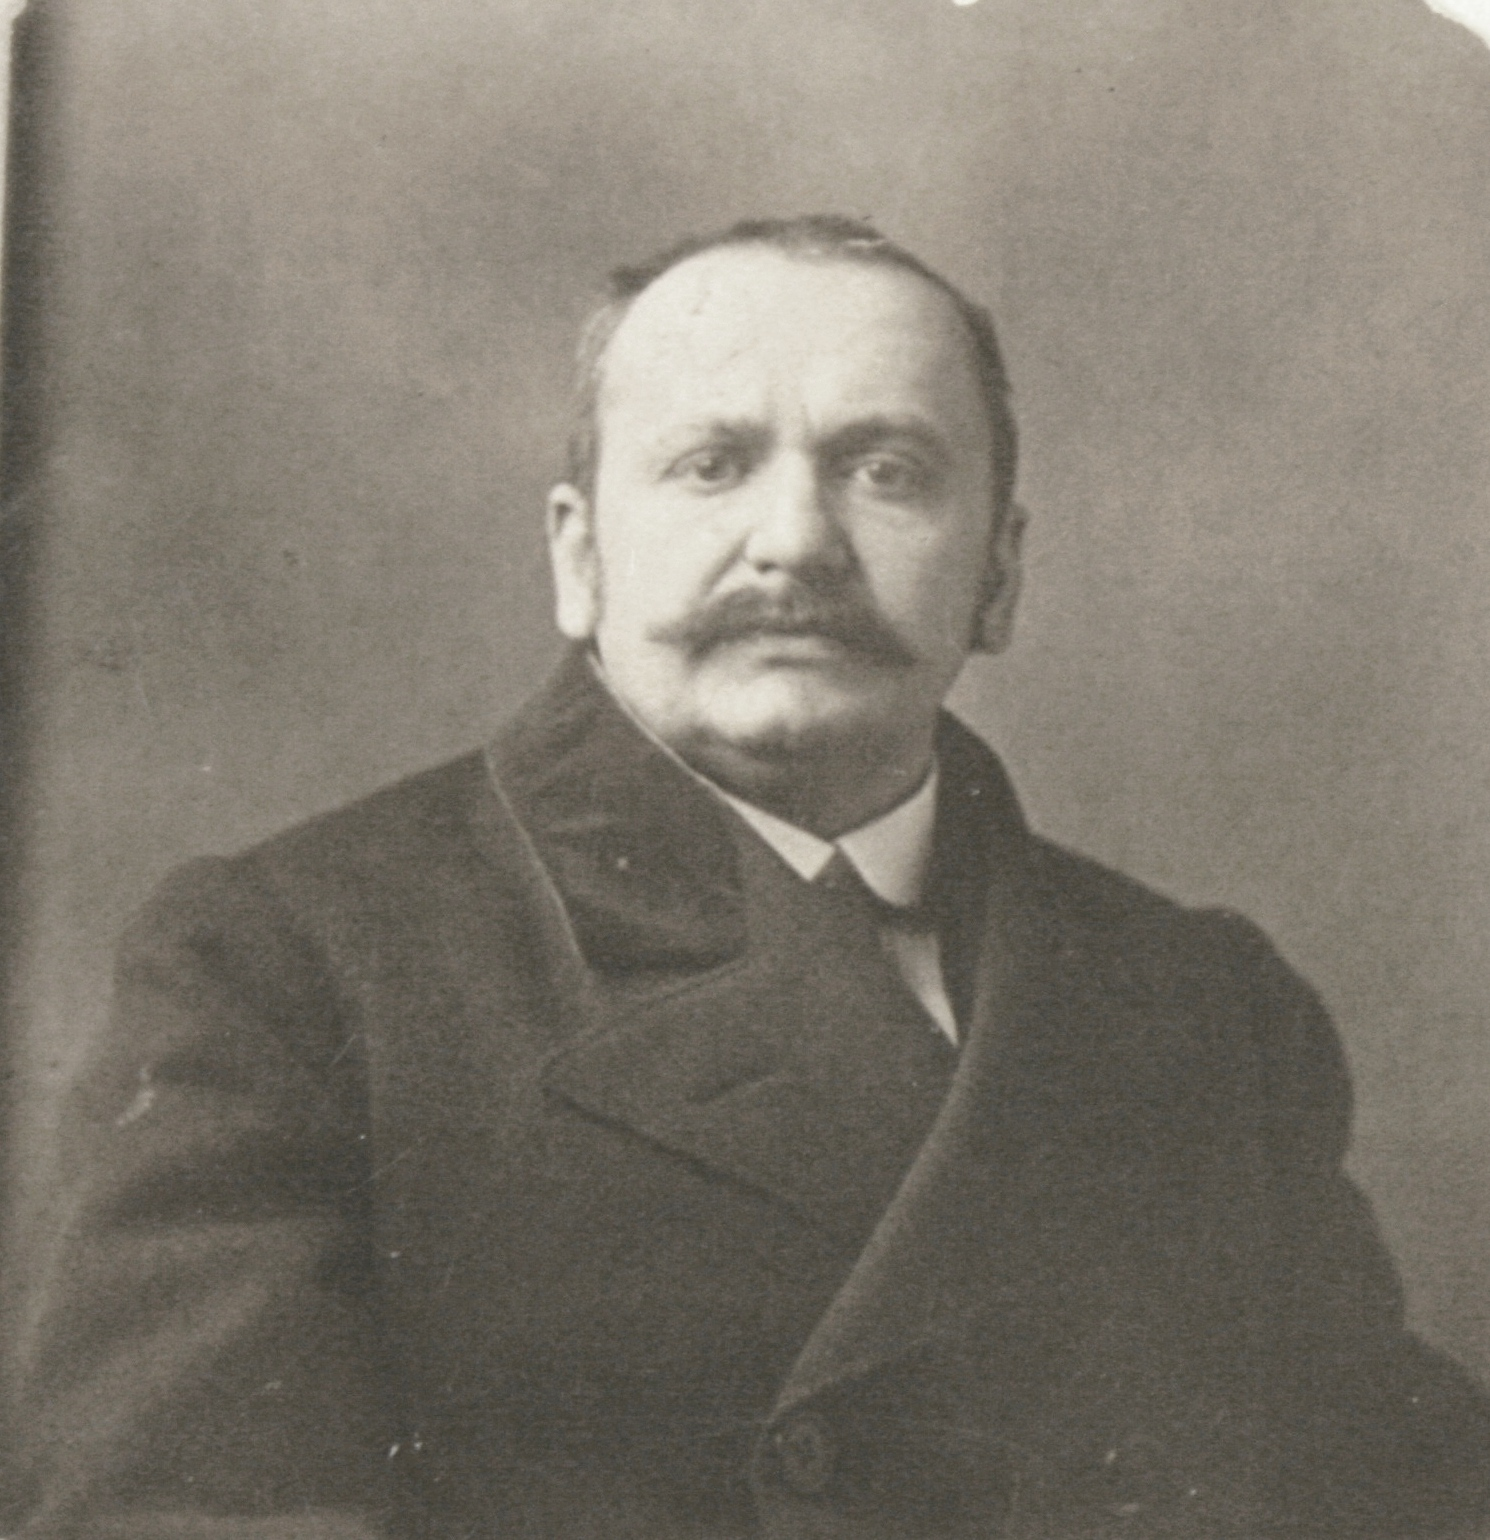 István Bibó's father: István Bibó Sr., director of the University Library Szeged, 1910s